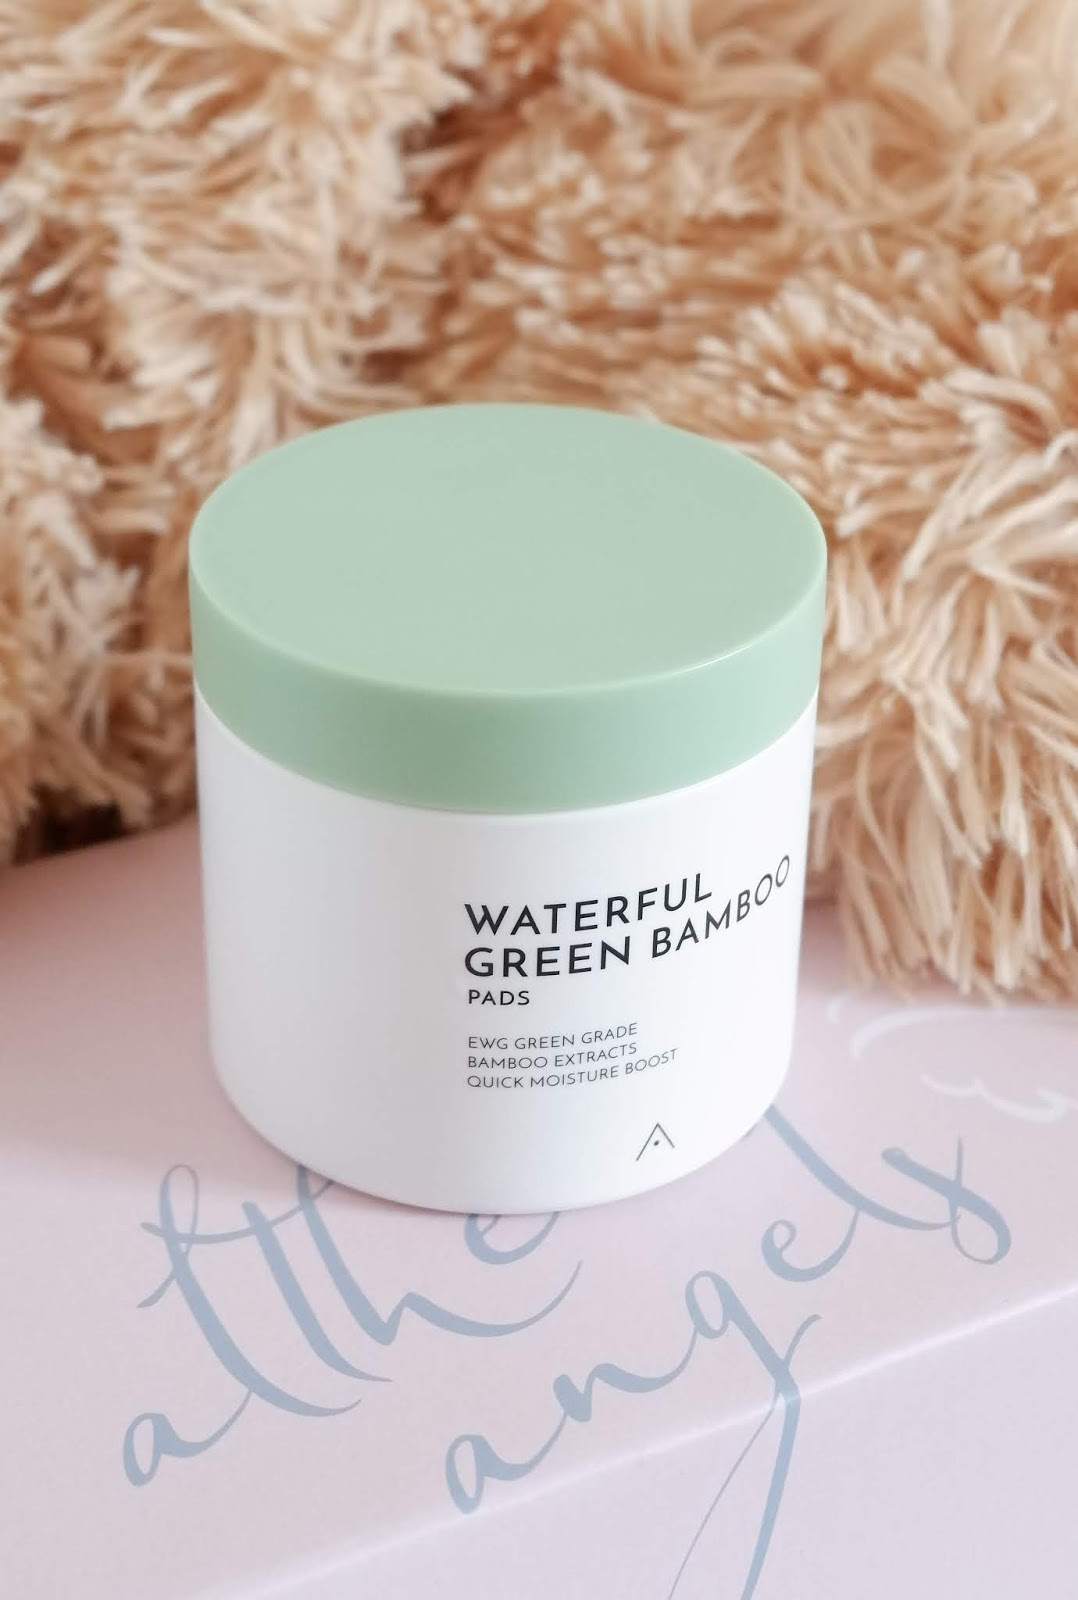 ALTHEA WATERFUL GREEN BAMBOO PADS  AND SKIN RELIEF CALMING CREAM REVIEW